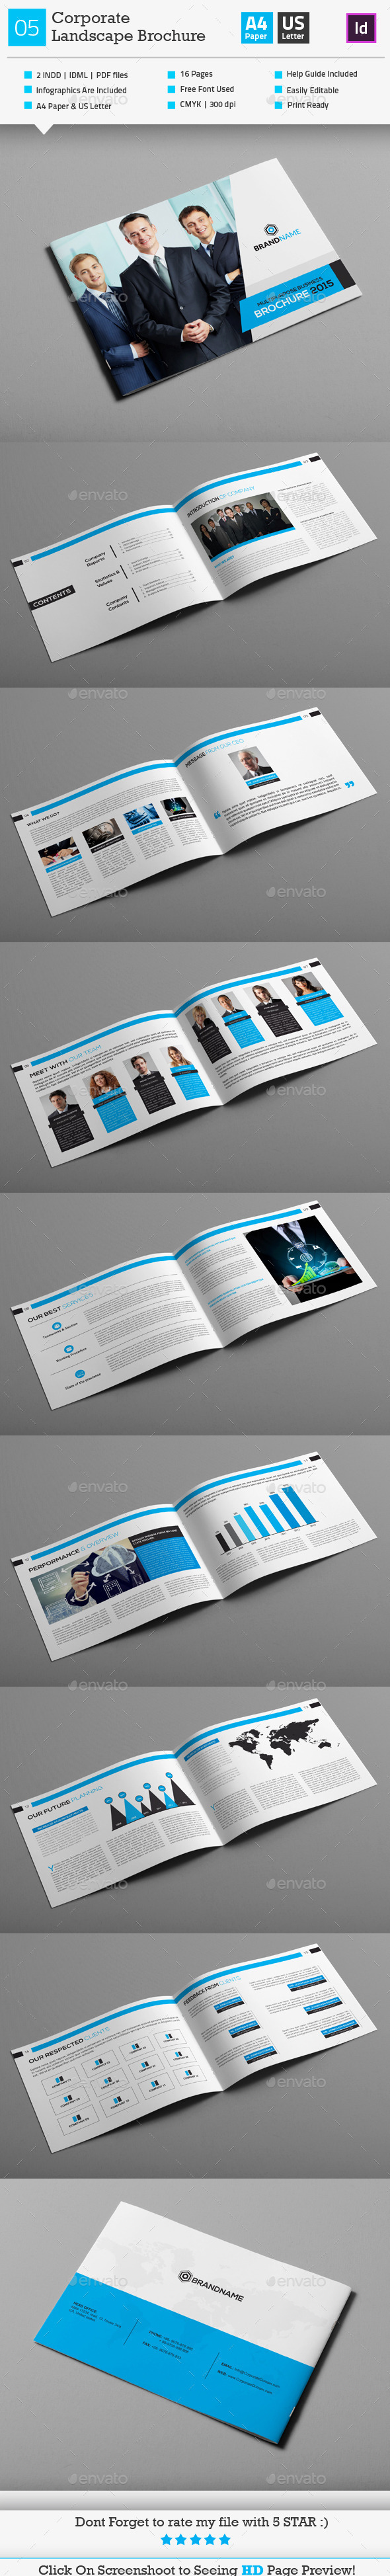 GraphicRiver Corporate Business Landscape Brochure 05 10403977